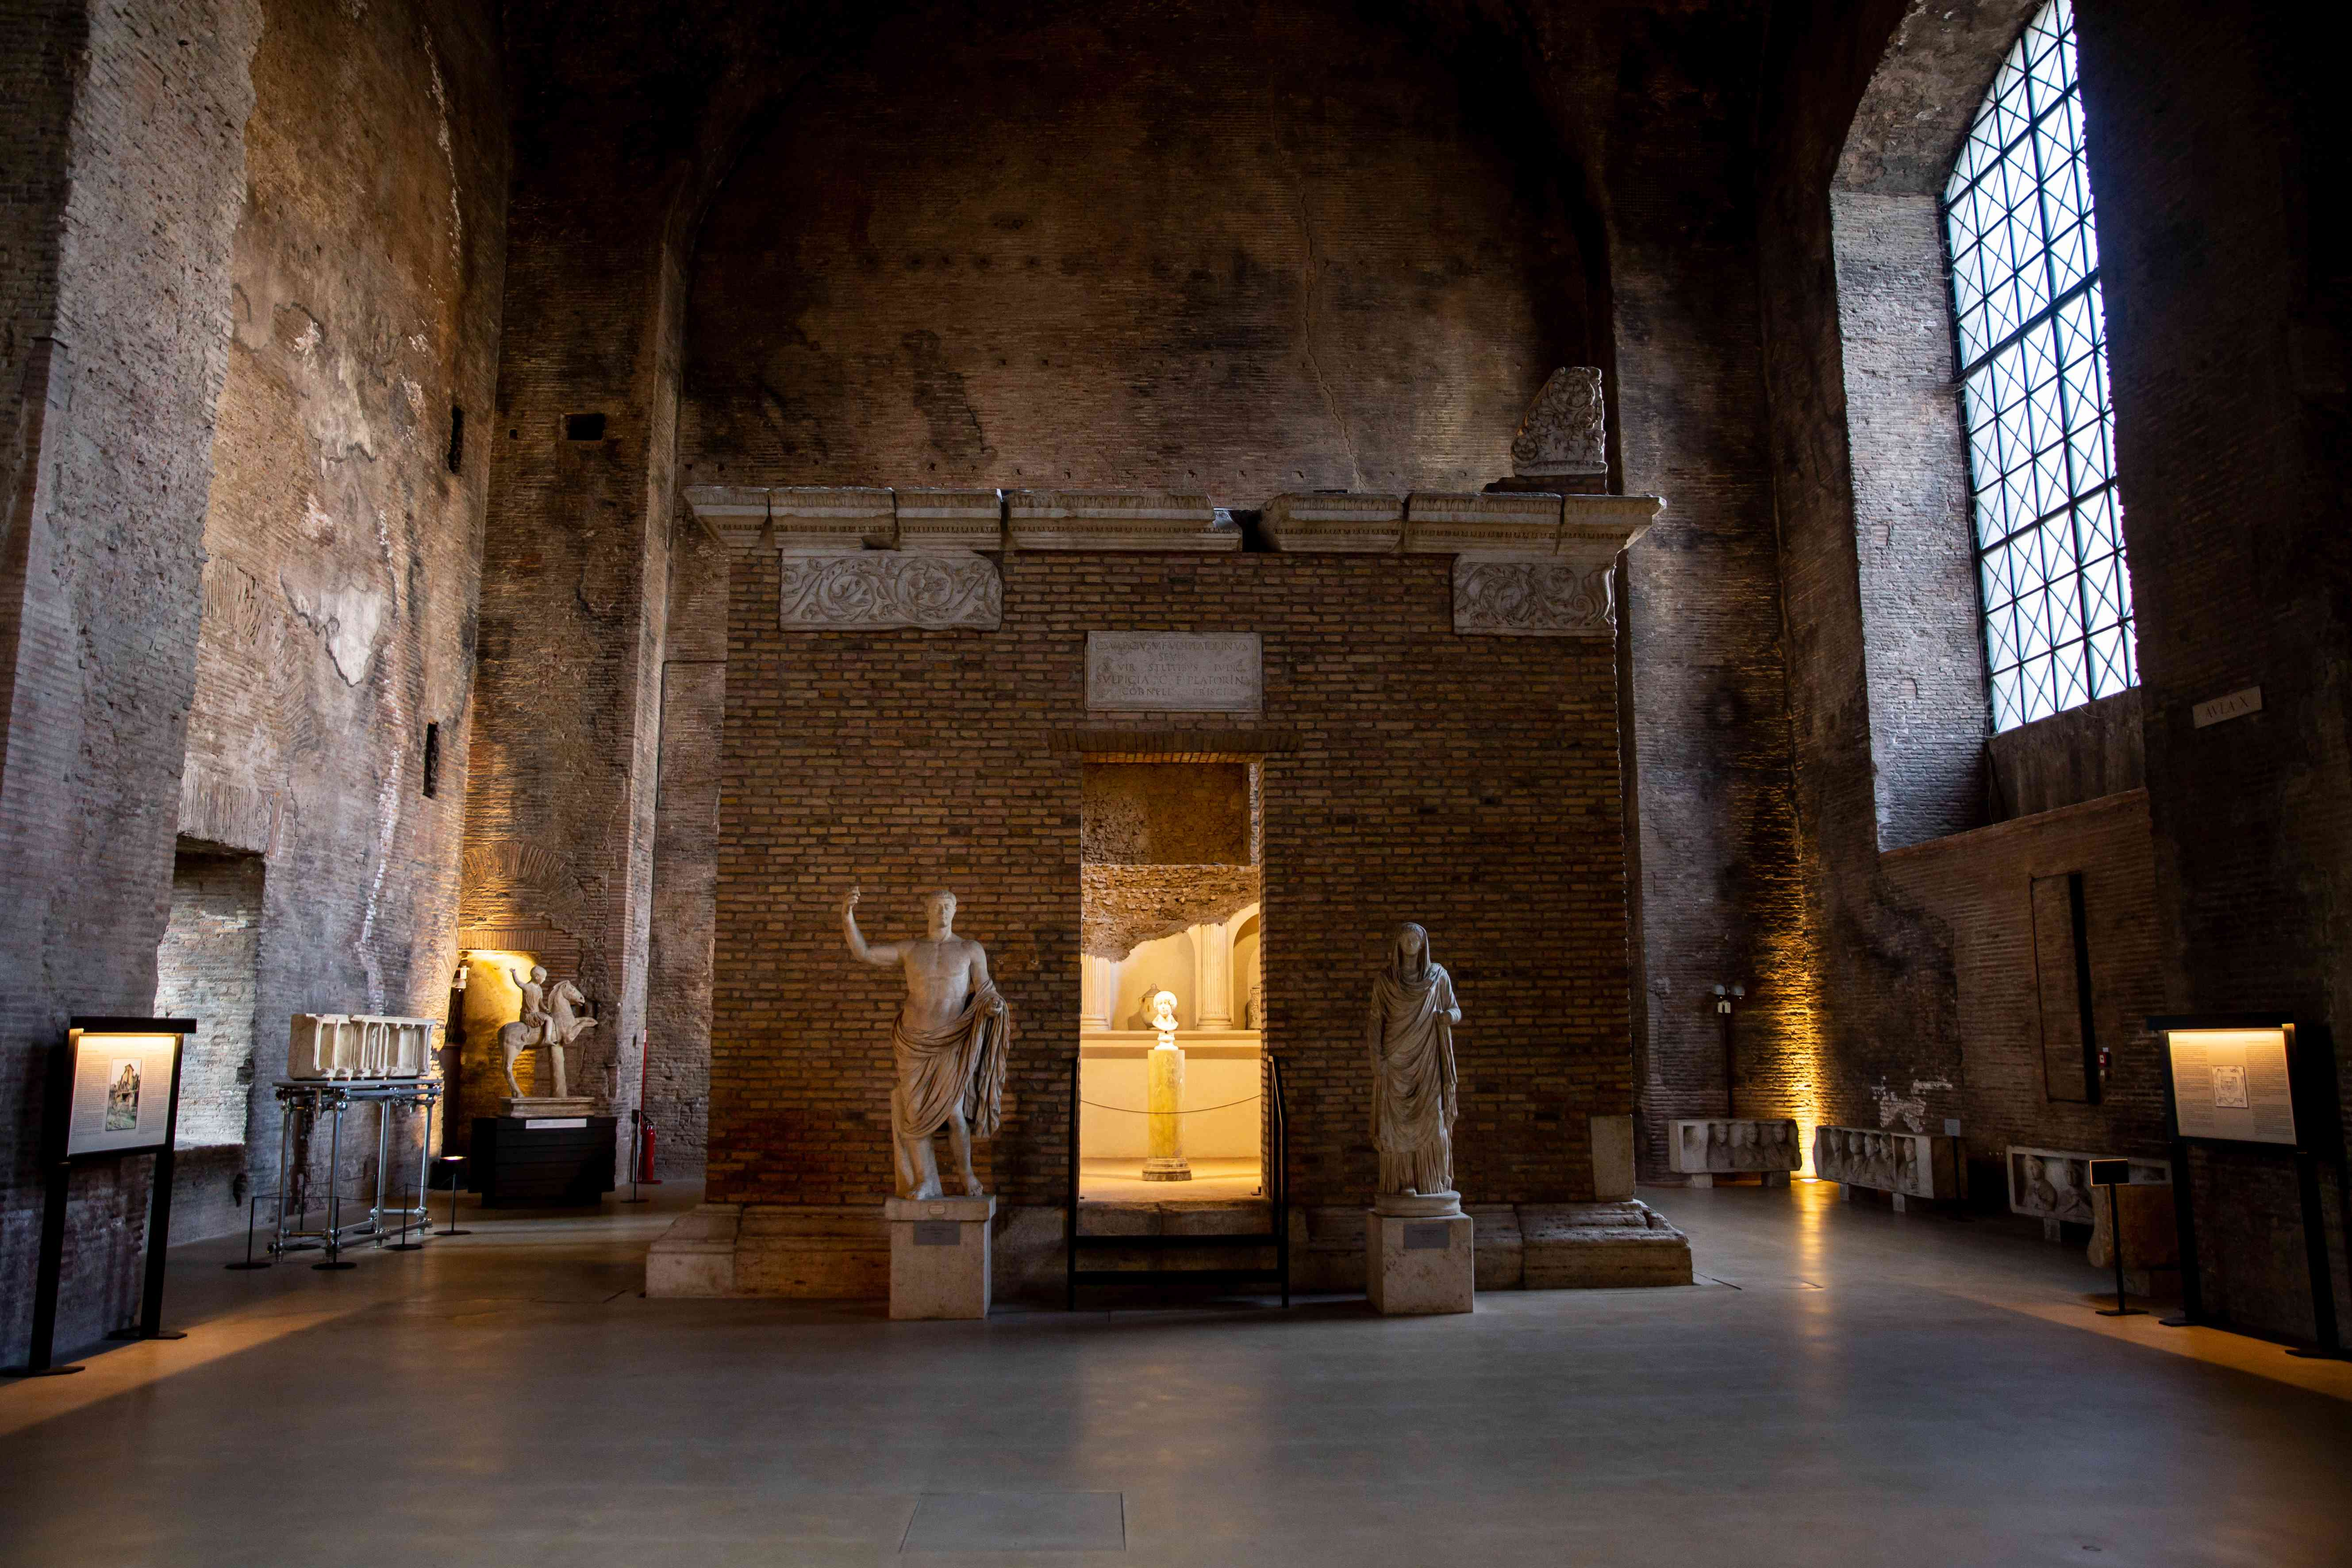 Baths of Diocletian in Rome, Italy